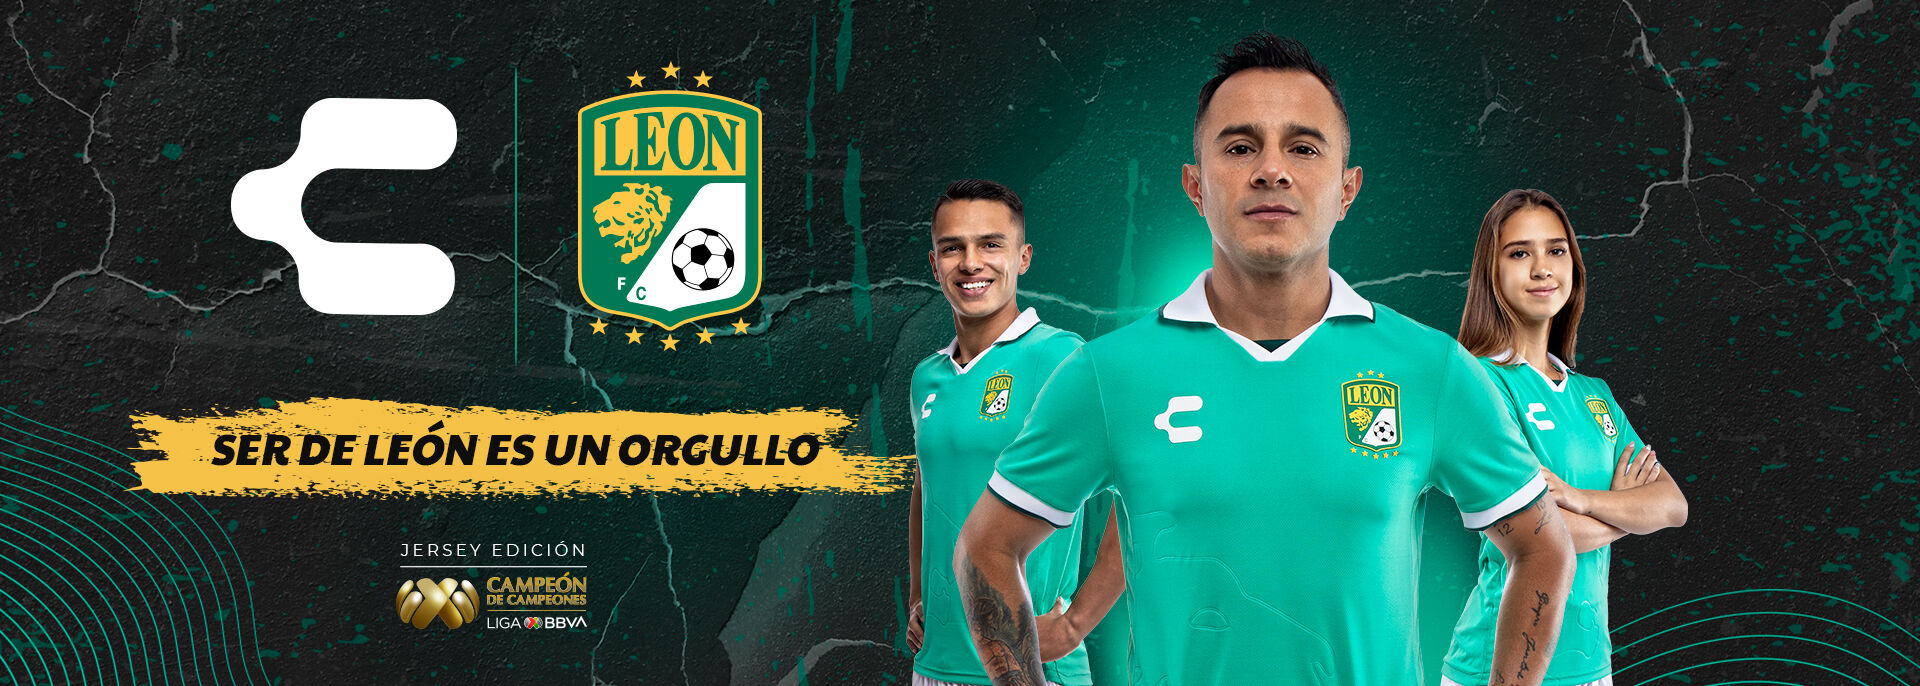 LEON_OFICIAL_CHARLY_JERSEY_686.jpg